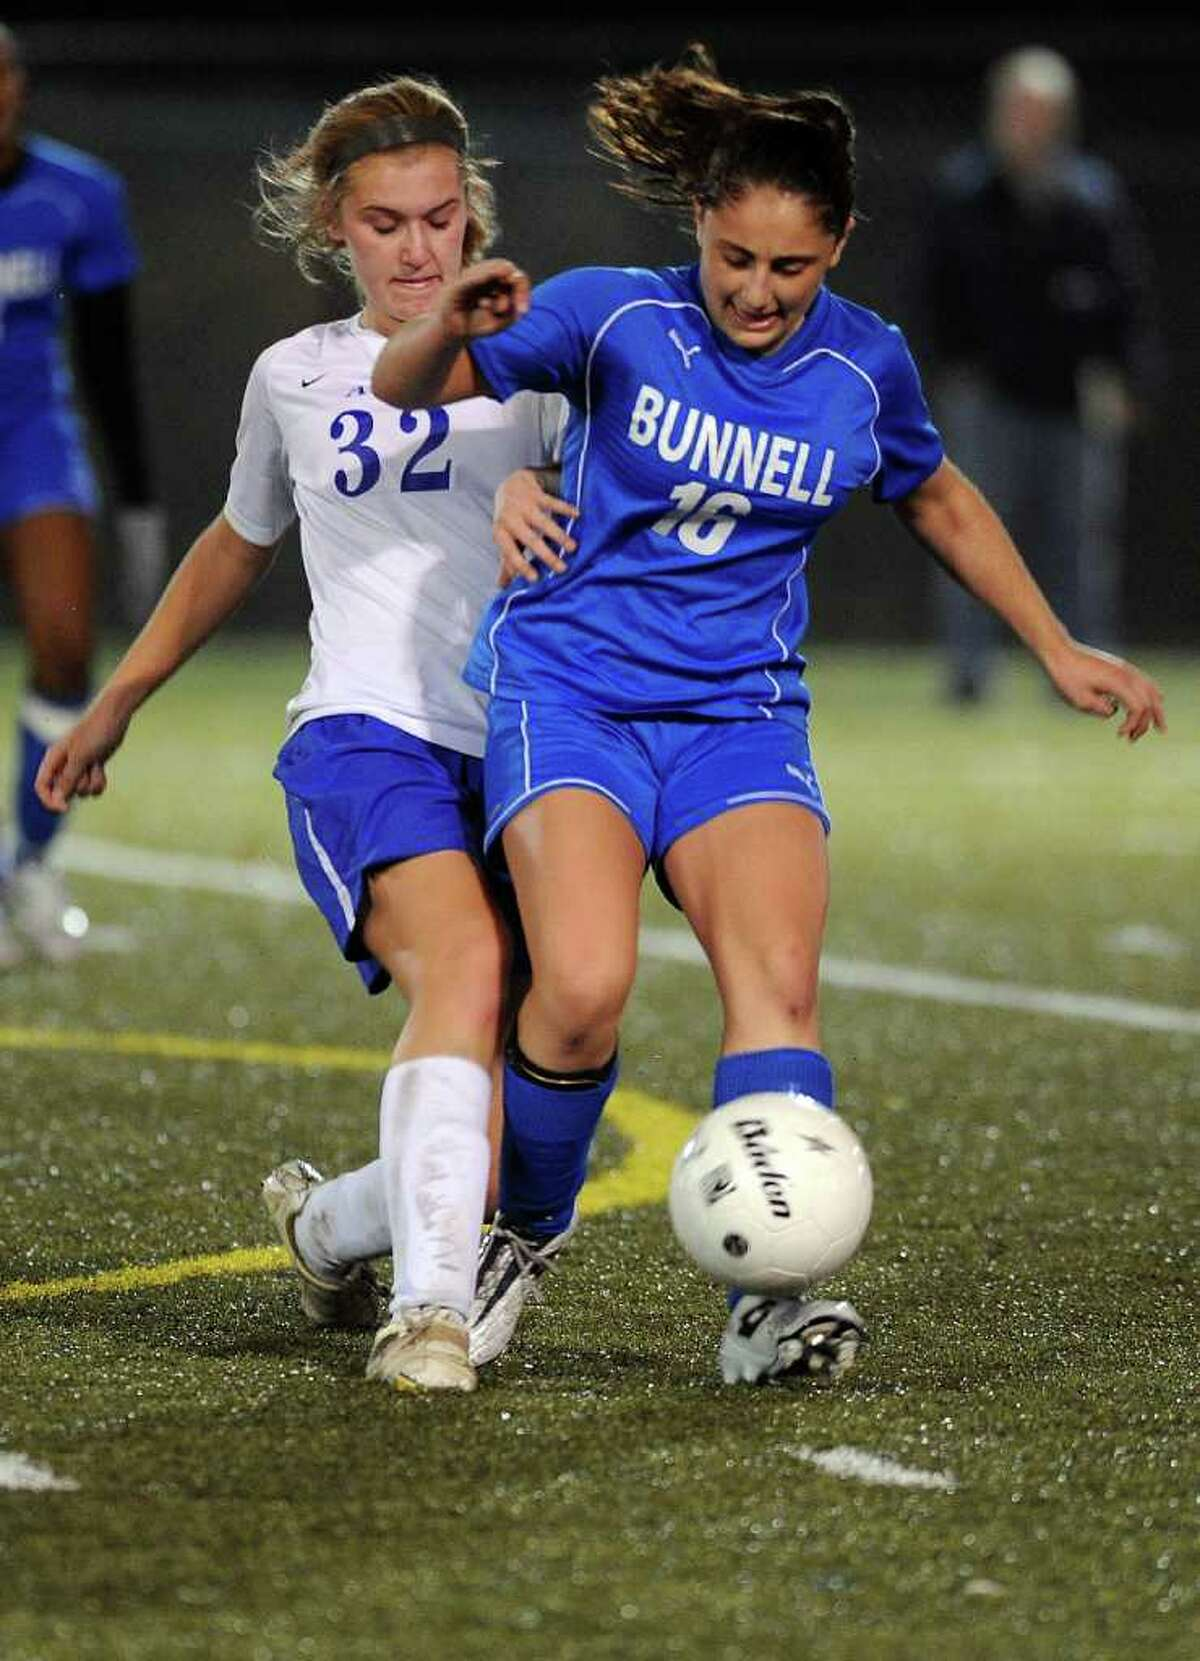 Bunnell's Kacie O'Neill kicks the ball away from an Avon's Sarah Gerali during the State Tournament Class L Semifinal game at Municipal Stadium in Waterbury on Tuesday, November 16, 2010.